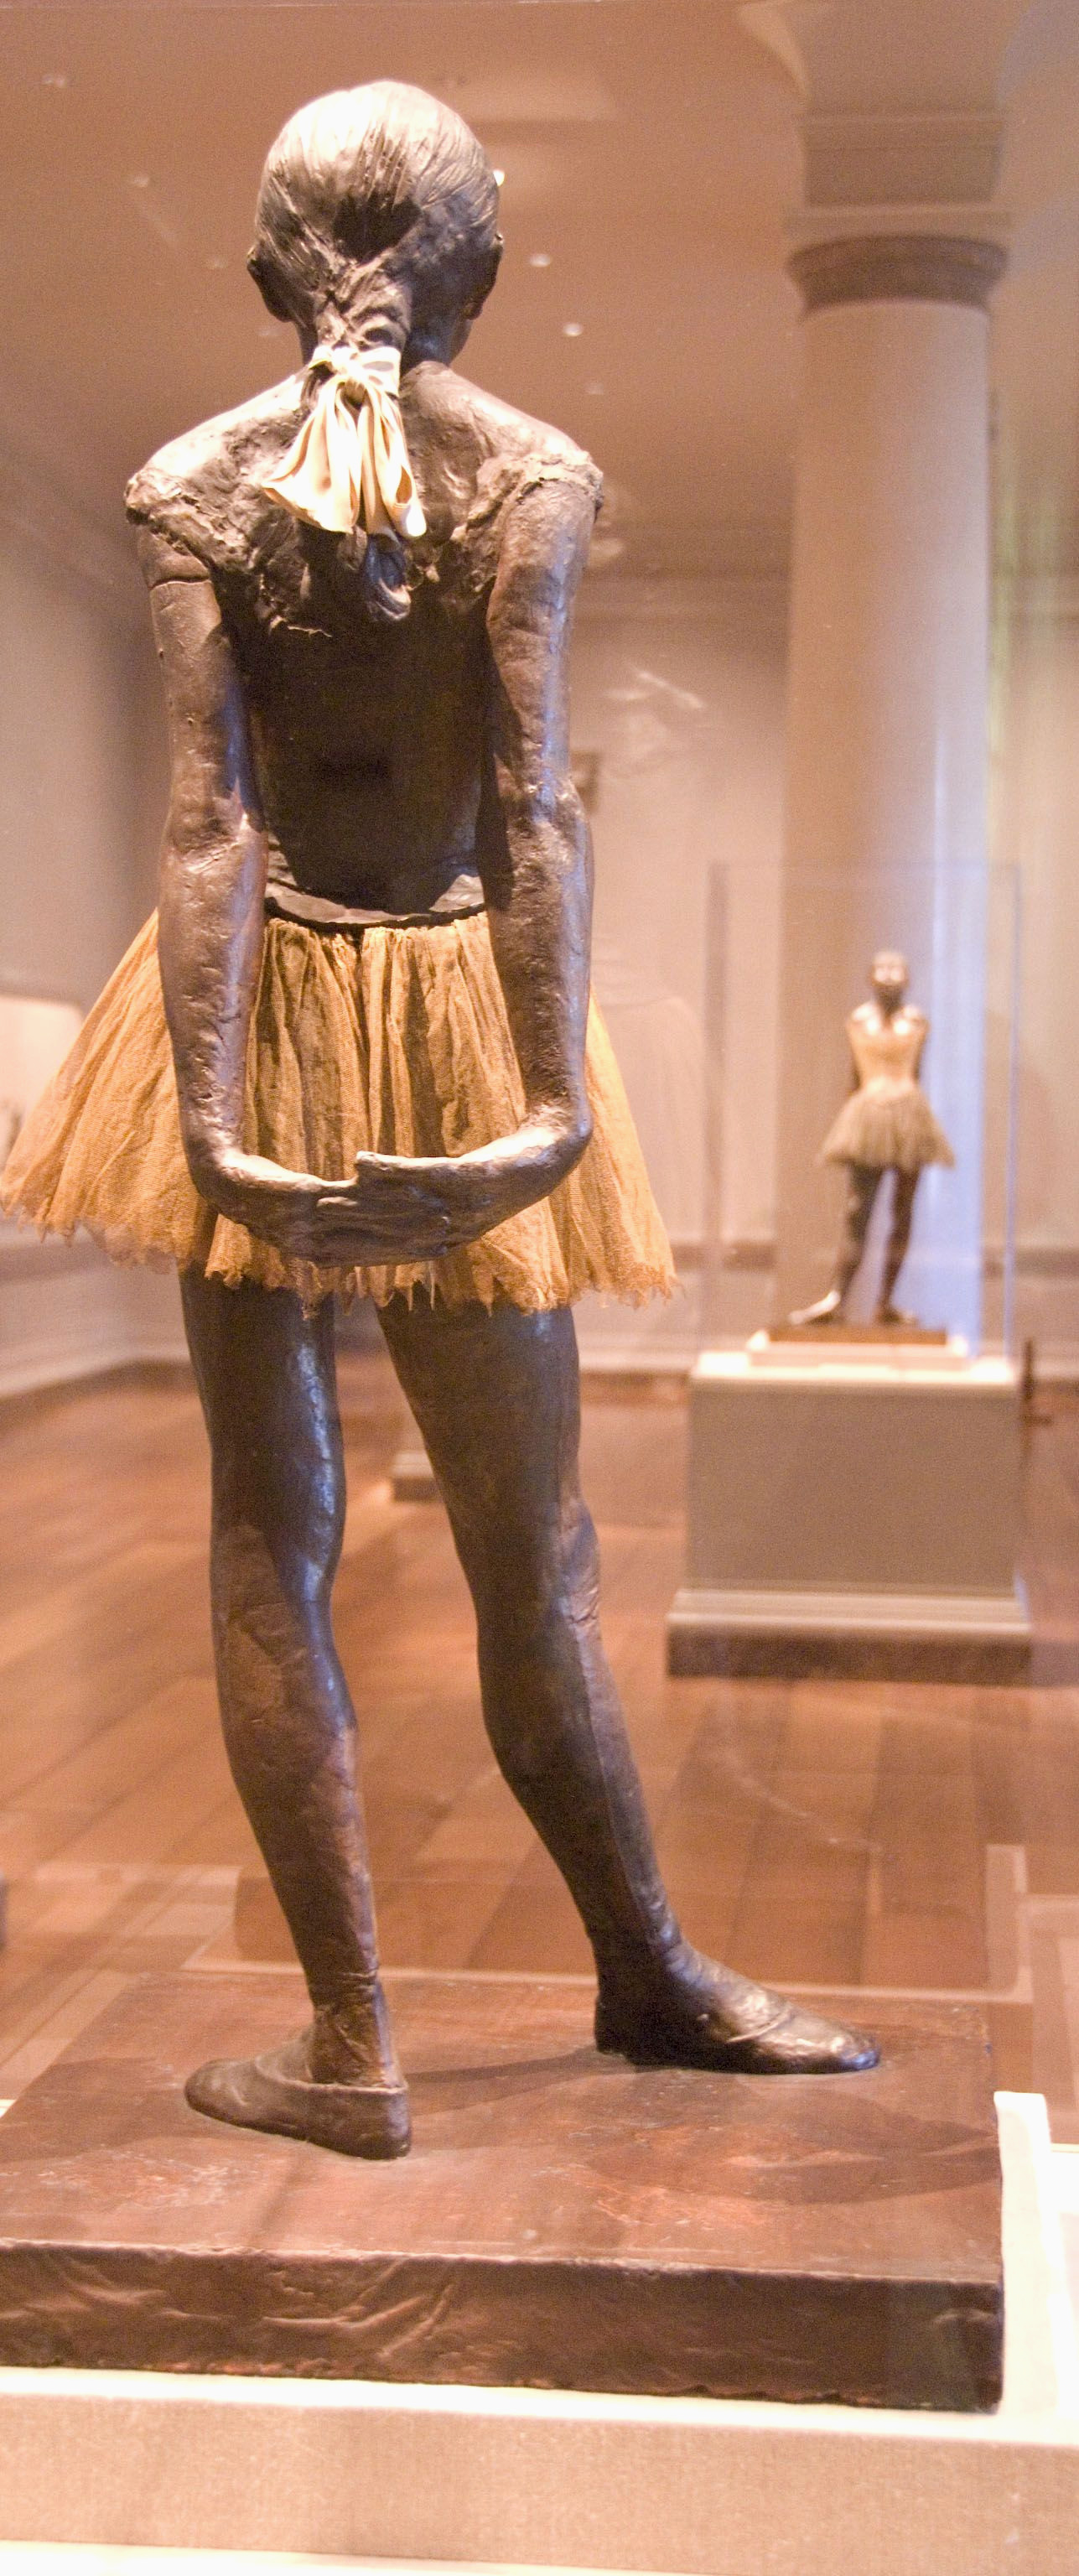 La Danseuse De Degas Peinture Unique 108 Best Degas Edgar Sculpture Images In 2019 Galerie